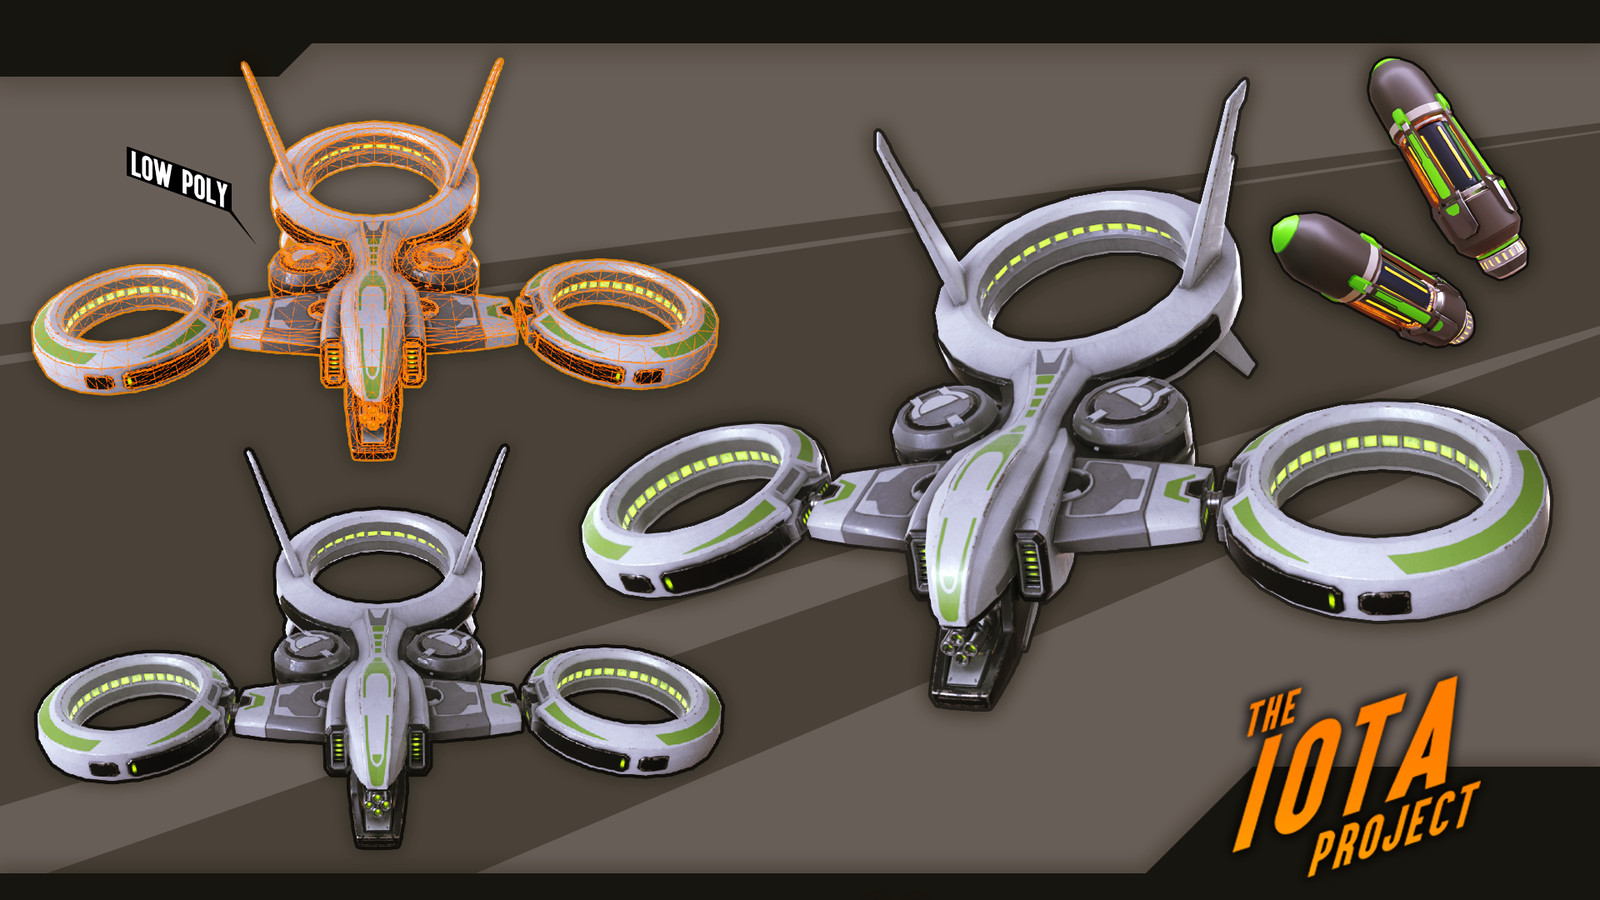 The drone enemy type that I modeled and animated. Final texture pass by Brenton Goodwin.